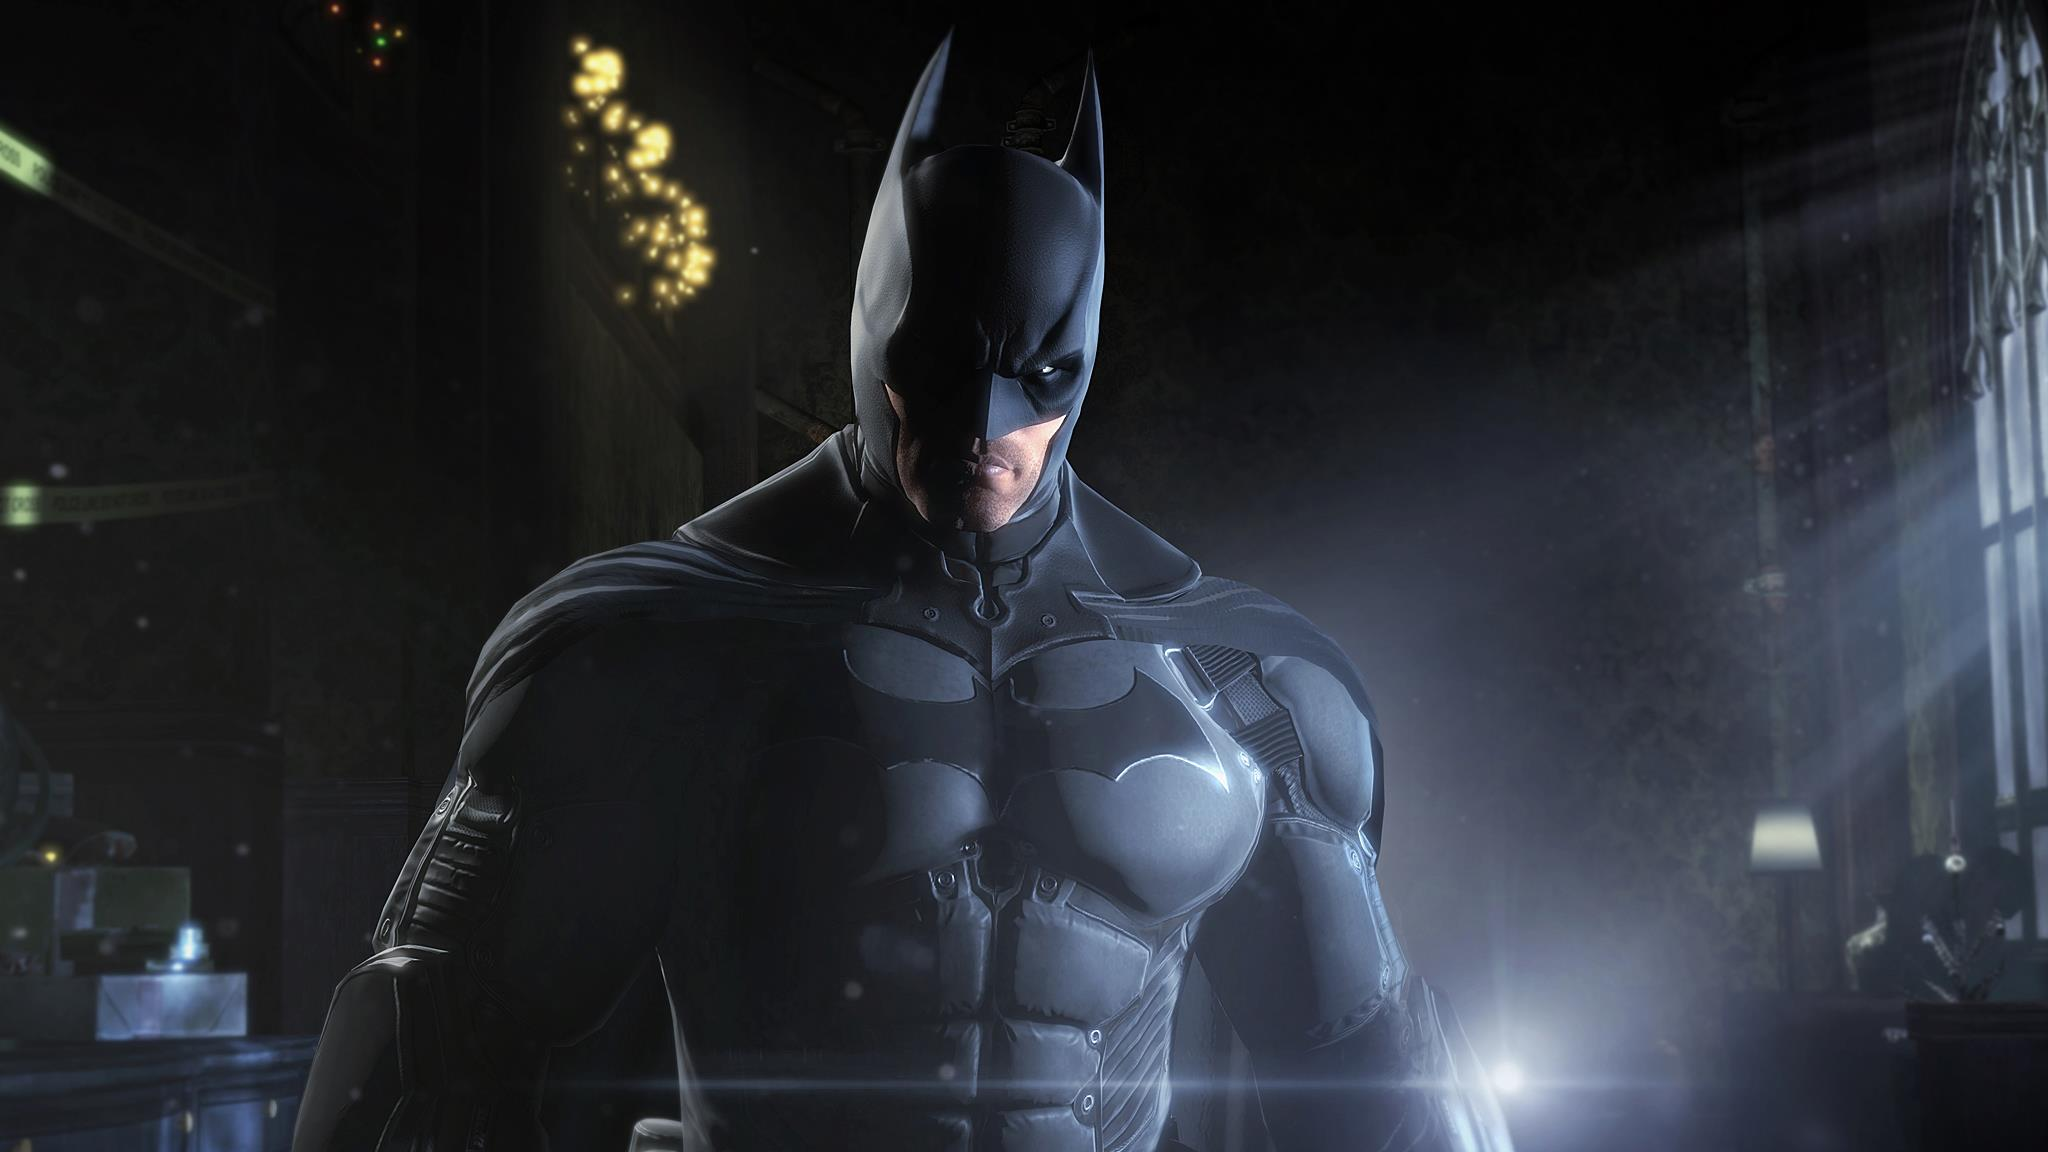 Batman: Arkham Origins News. Rumor: Warner Bros working on new Batman and Suicide Squad game